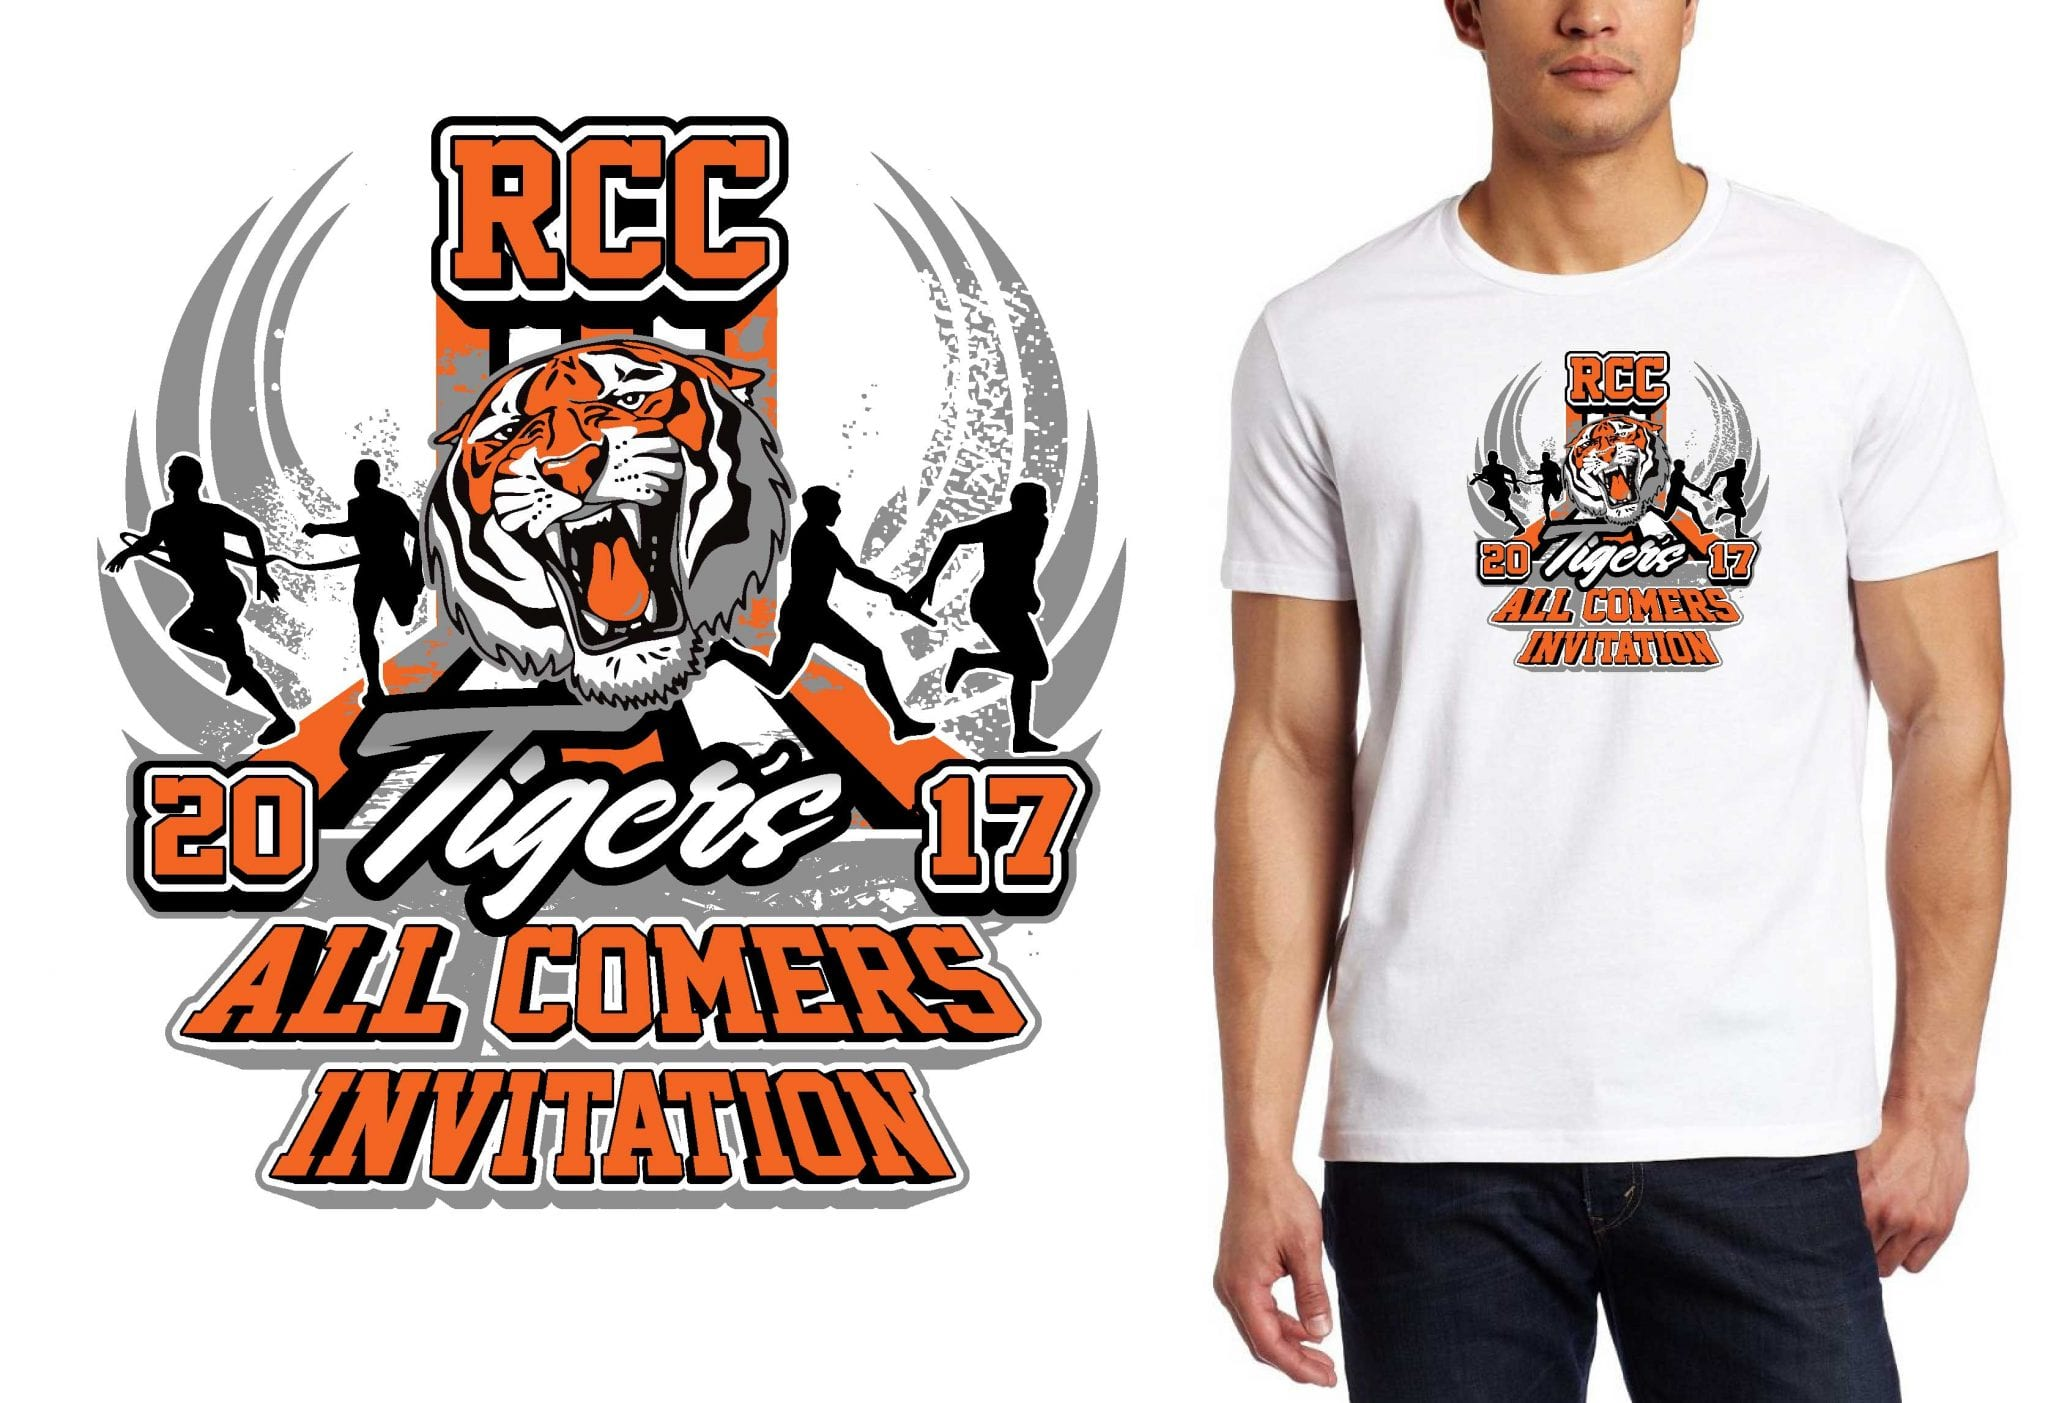 1 14 17 RCC Tiger Relays tshirt vector logo design for track and field